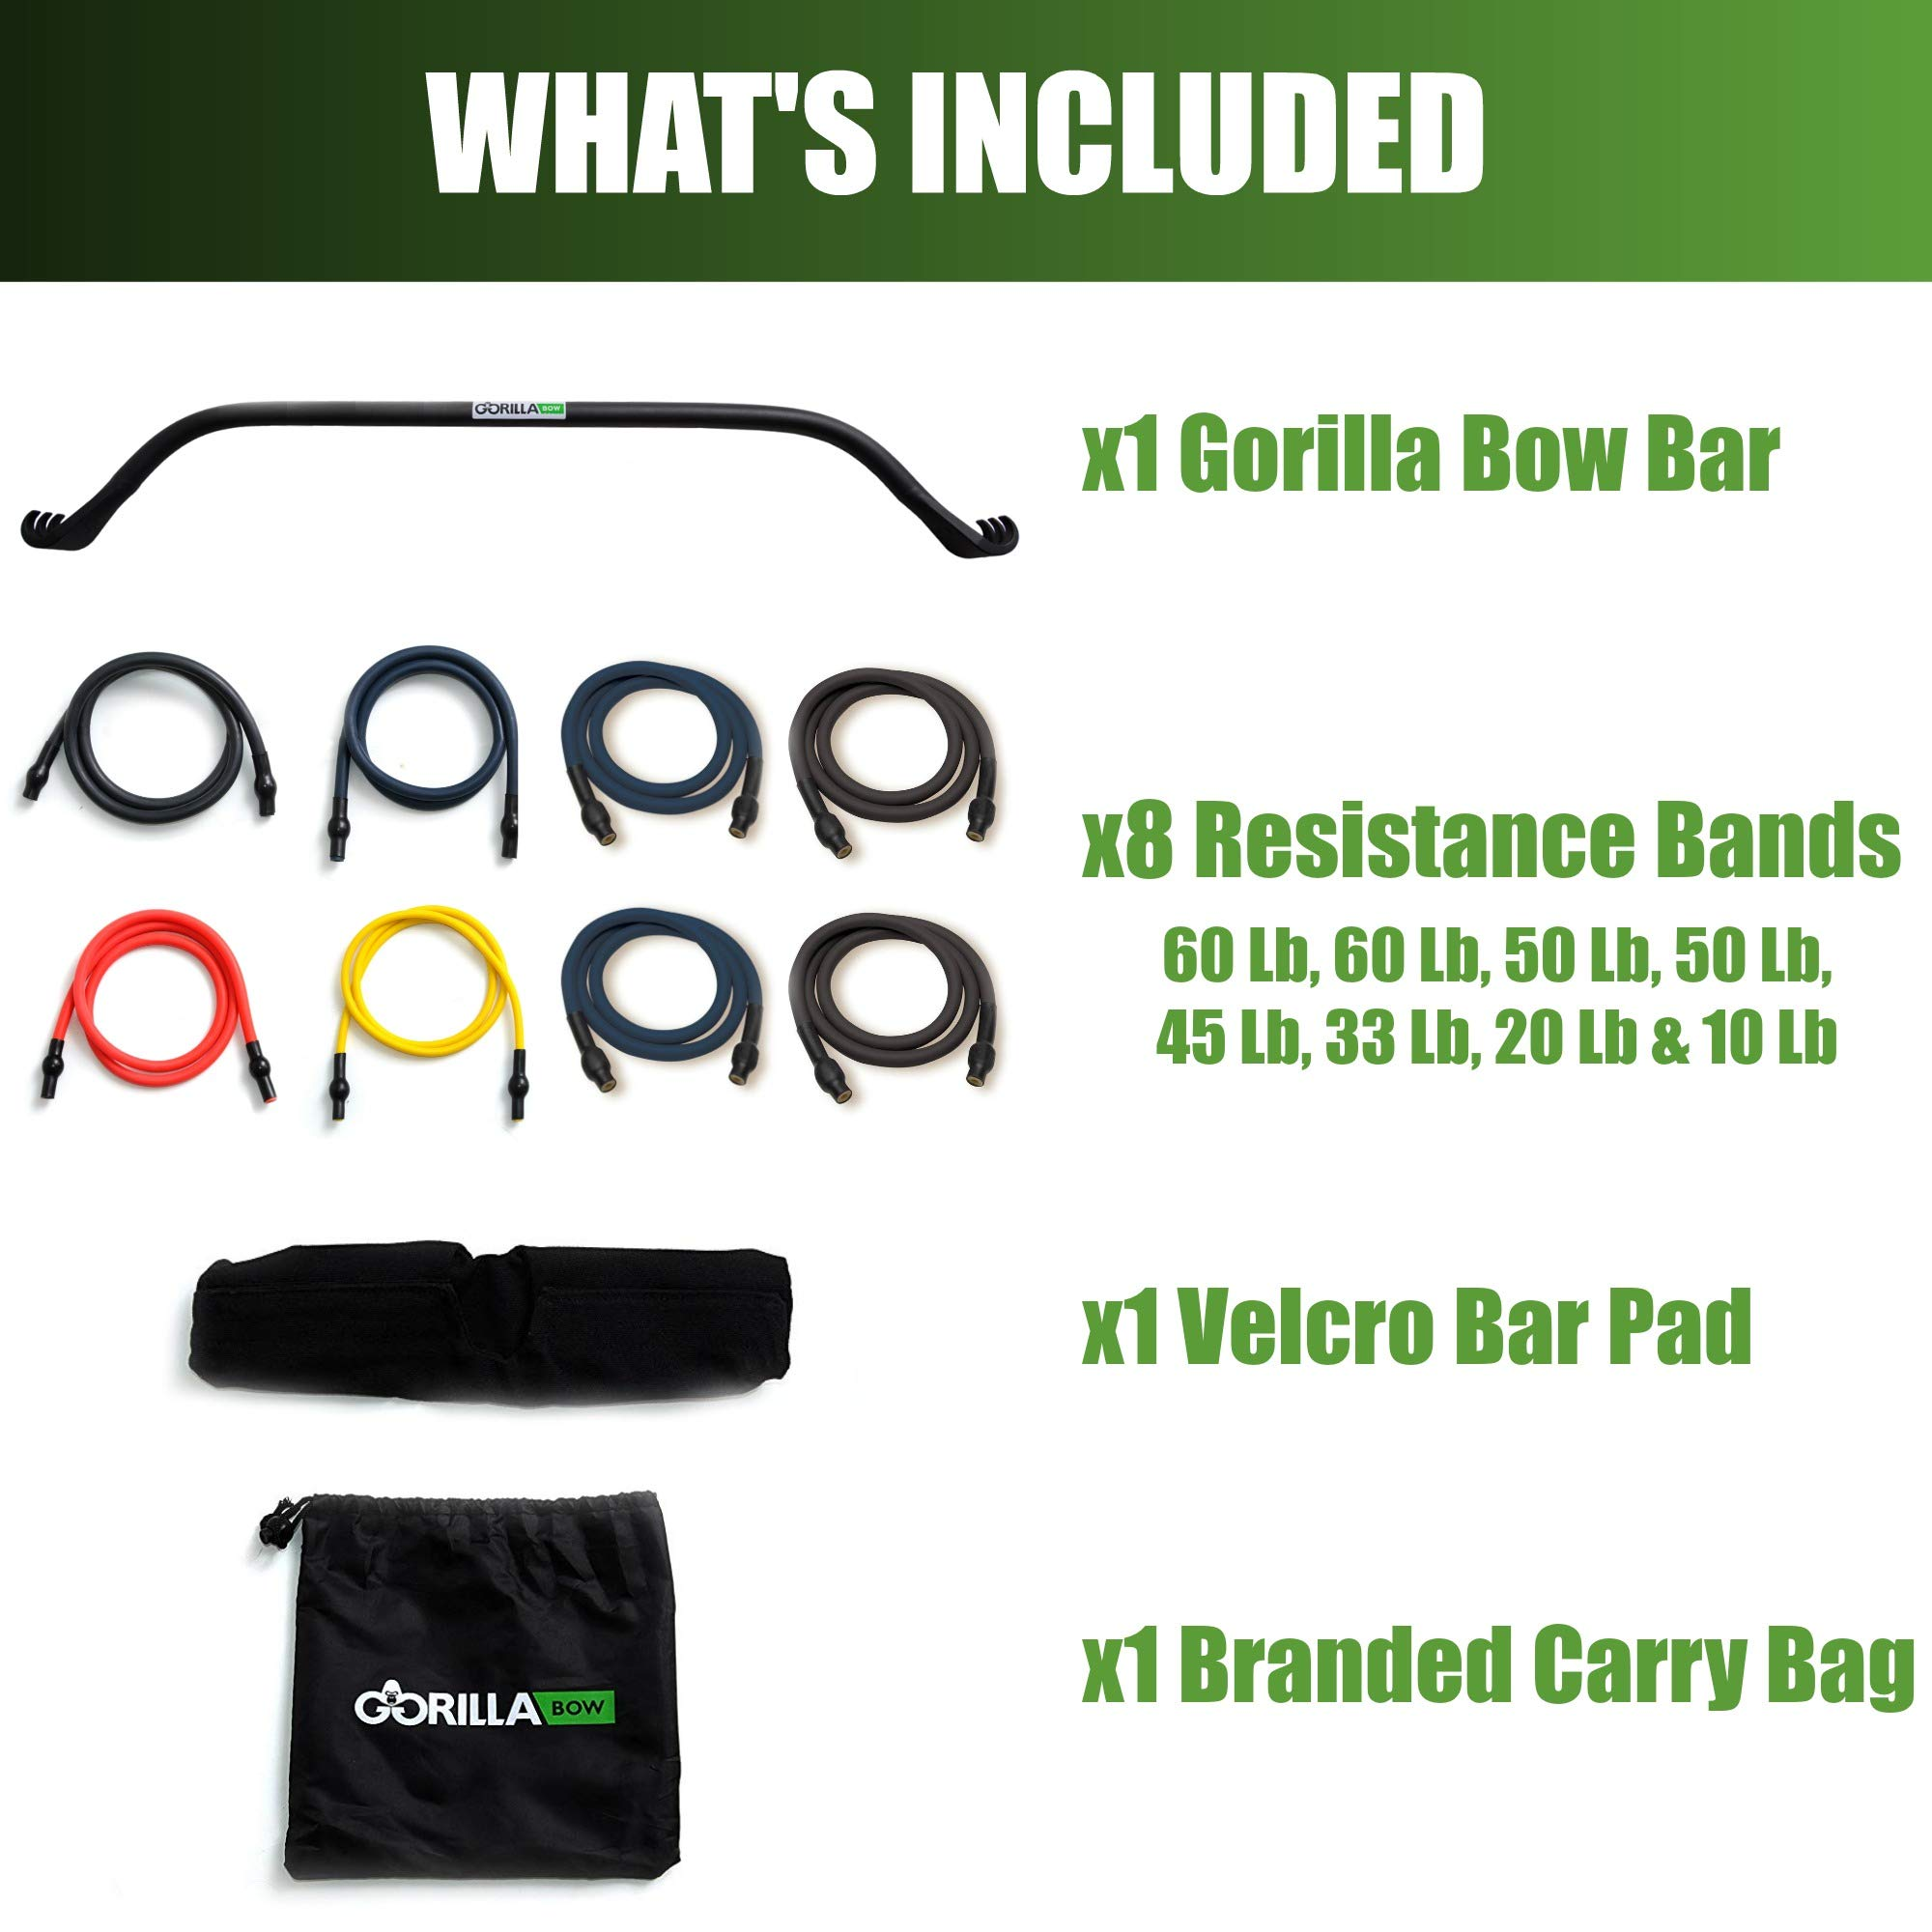 Gorilla Bow Portable Home Gym Resistance Band System - Heavy Set | Weightlifting & HIIT Interval Training Kit | Full Body Workout Equipment (Heavy Set - Black) by Gorilla Fitness (Image #2)